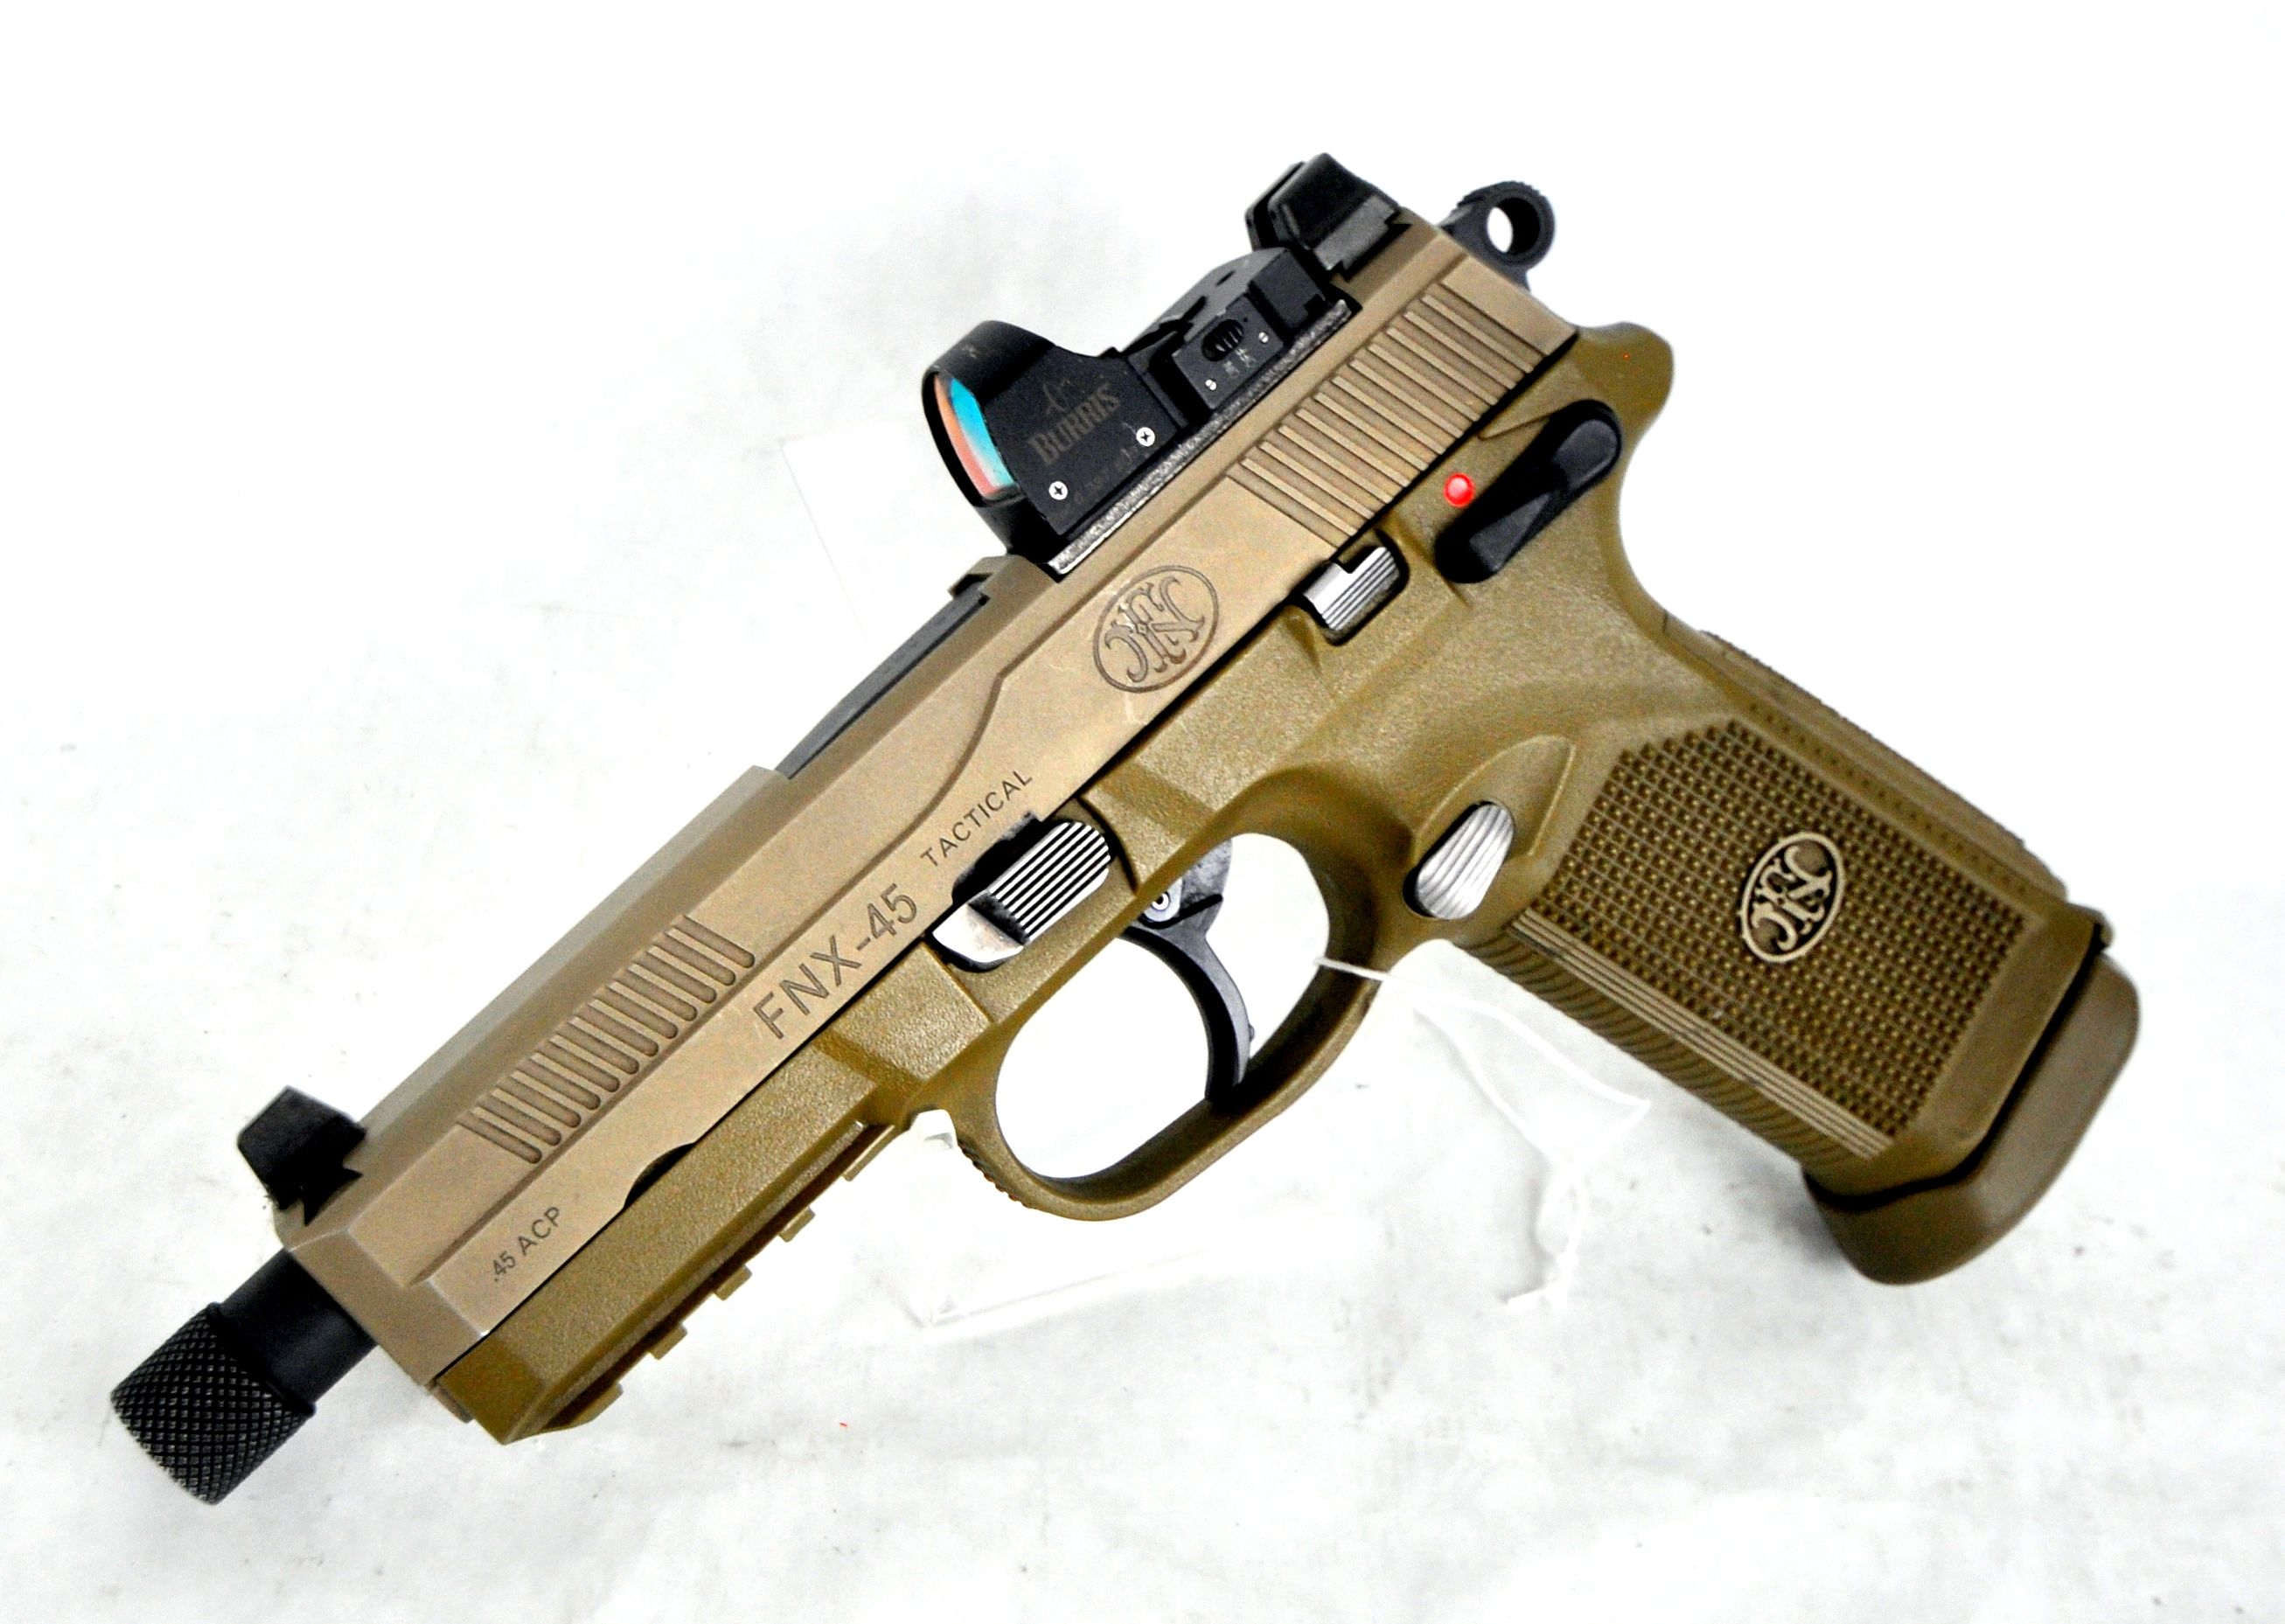 Fnh Usa Fnx 45 Fde Tactical 45 Acp Pre Owned 999 99 Mmp Guns Find Our Speedloader Now Www Raeind Com Or Http Fn 45 Tactical Tactical Military Guns